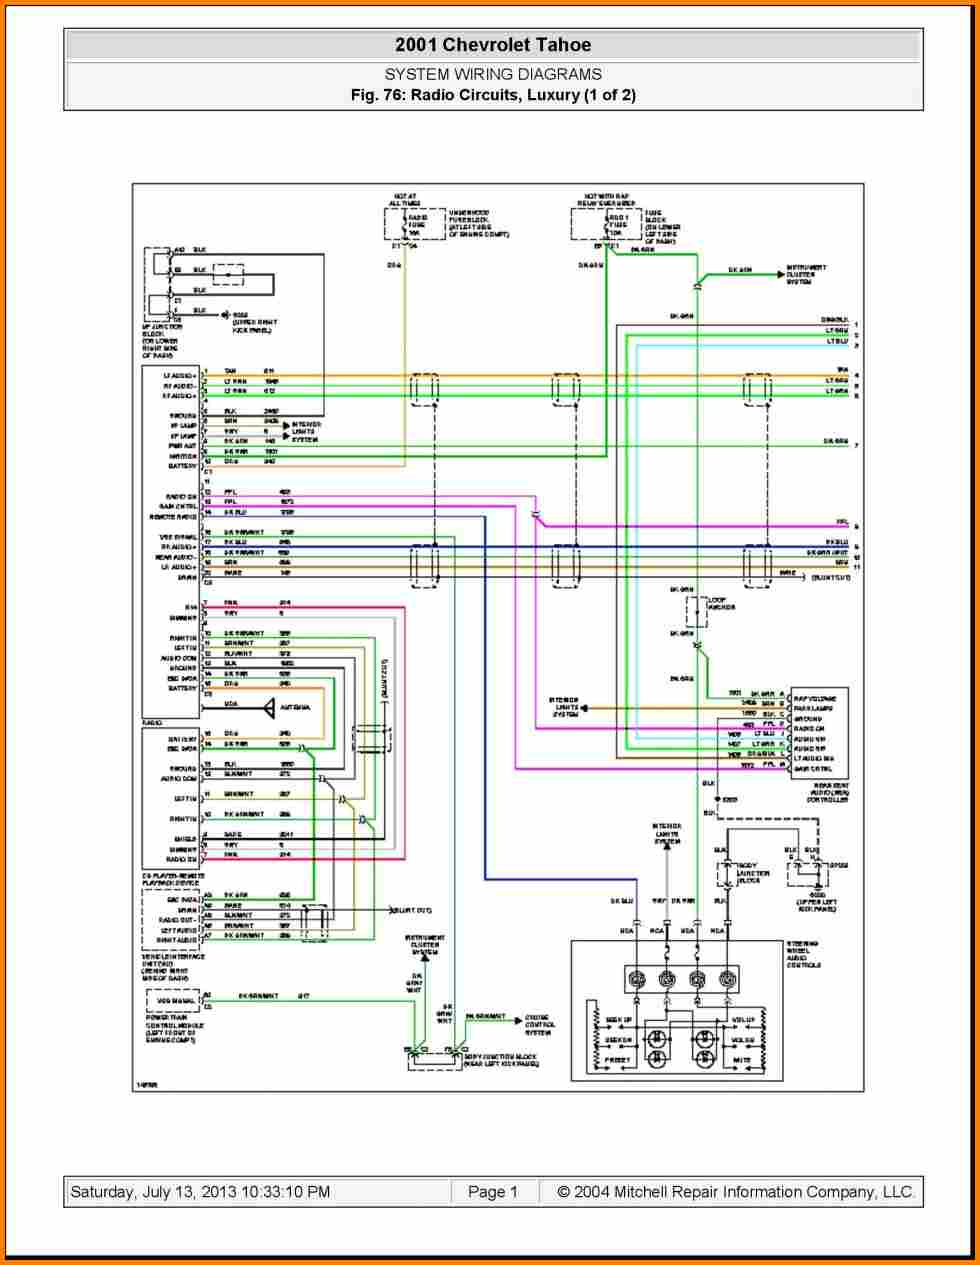 gmc sierra wiring diagram Download-2003 Chevy Silverado Wiring Diagram 2004 Chevrolet Radio Get Free Template 2005 Gmc Sierra Bose Tail Light Quality 970—1255 For Stereo 11-i